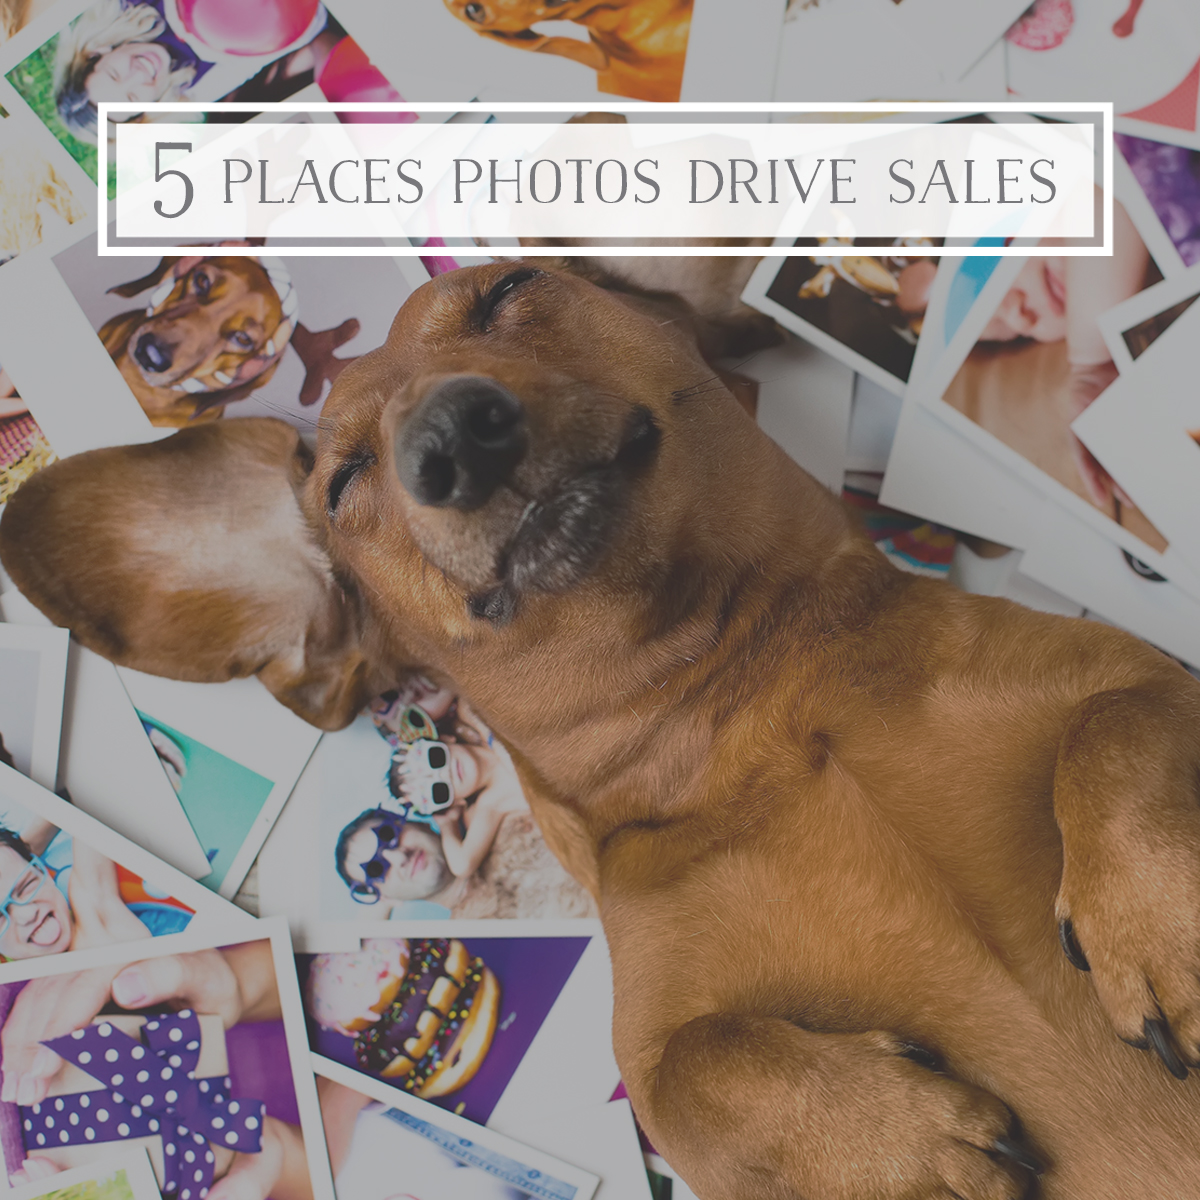 5 Plcaes Photos Drive Sales